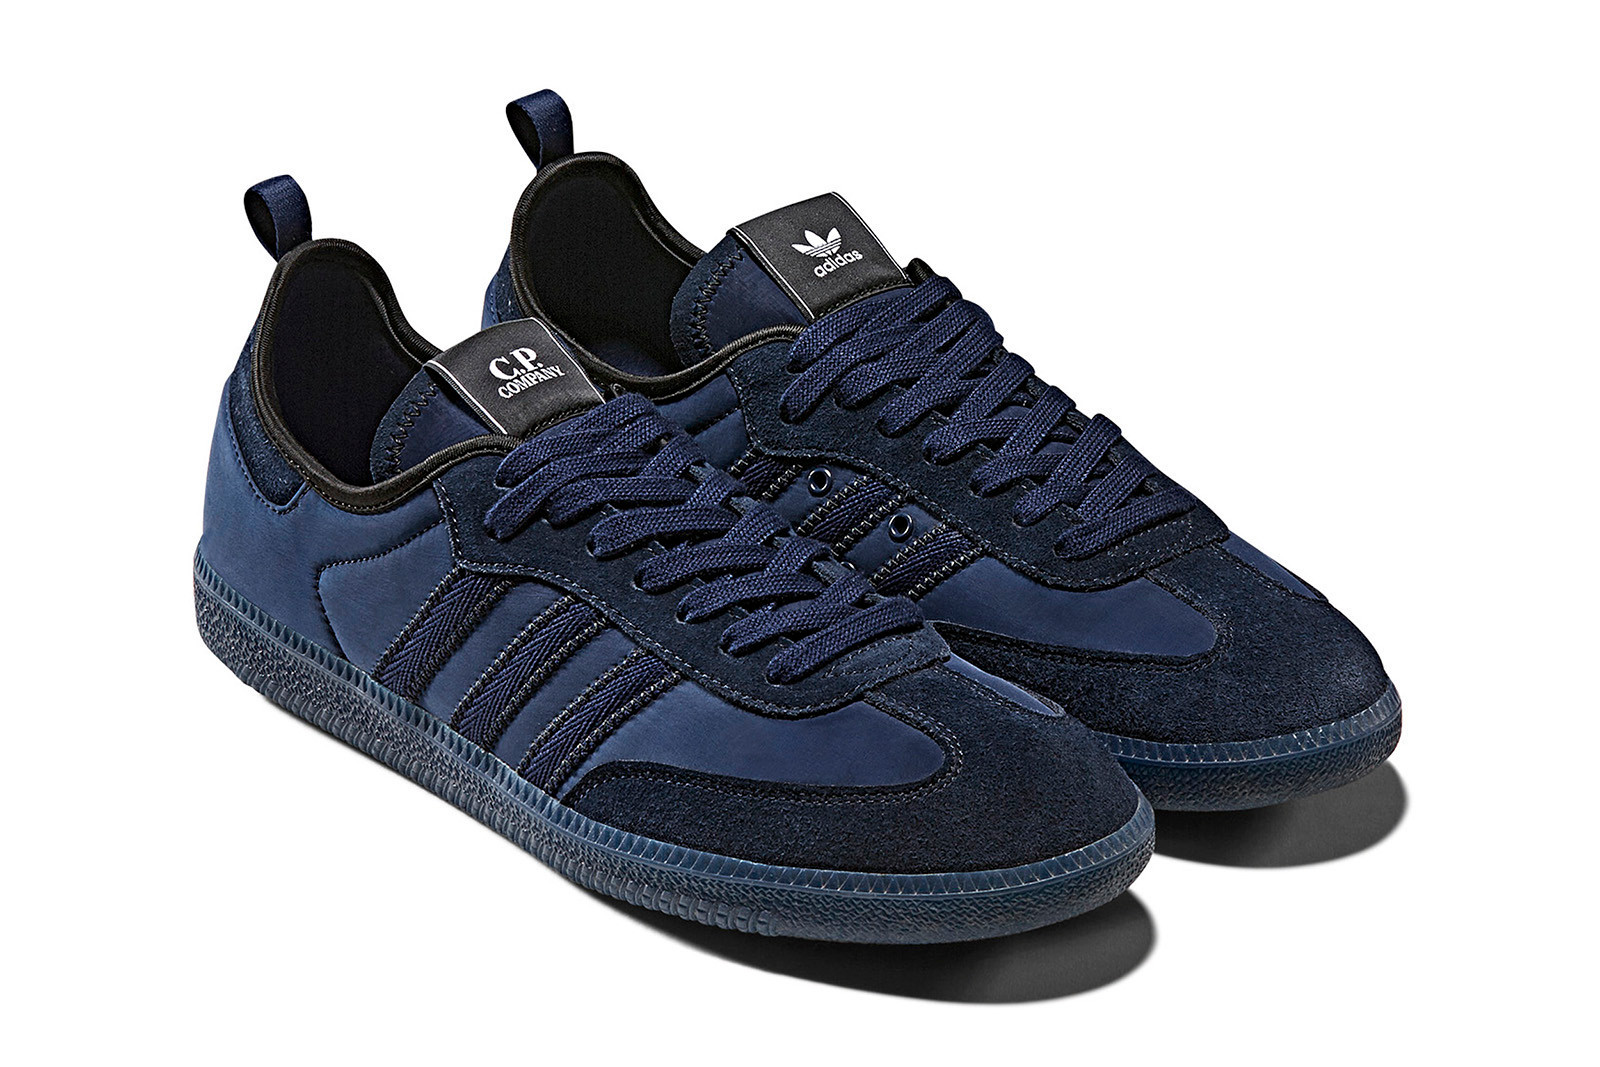 1252d12f02ae Coming Soon  adidas Originals by C.P. Company Fall Winter 2018 Collection.  August 13